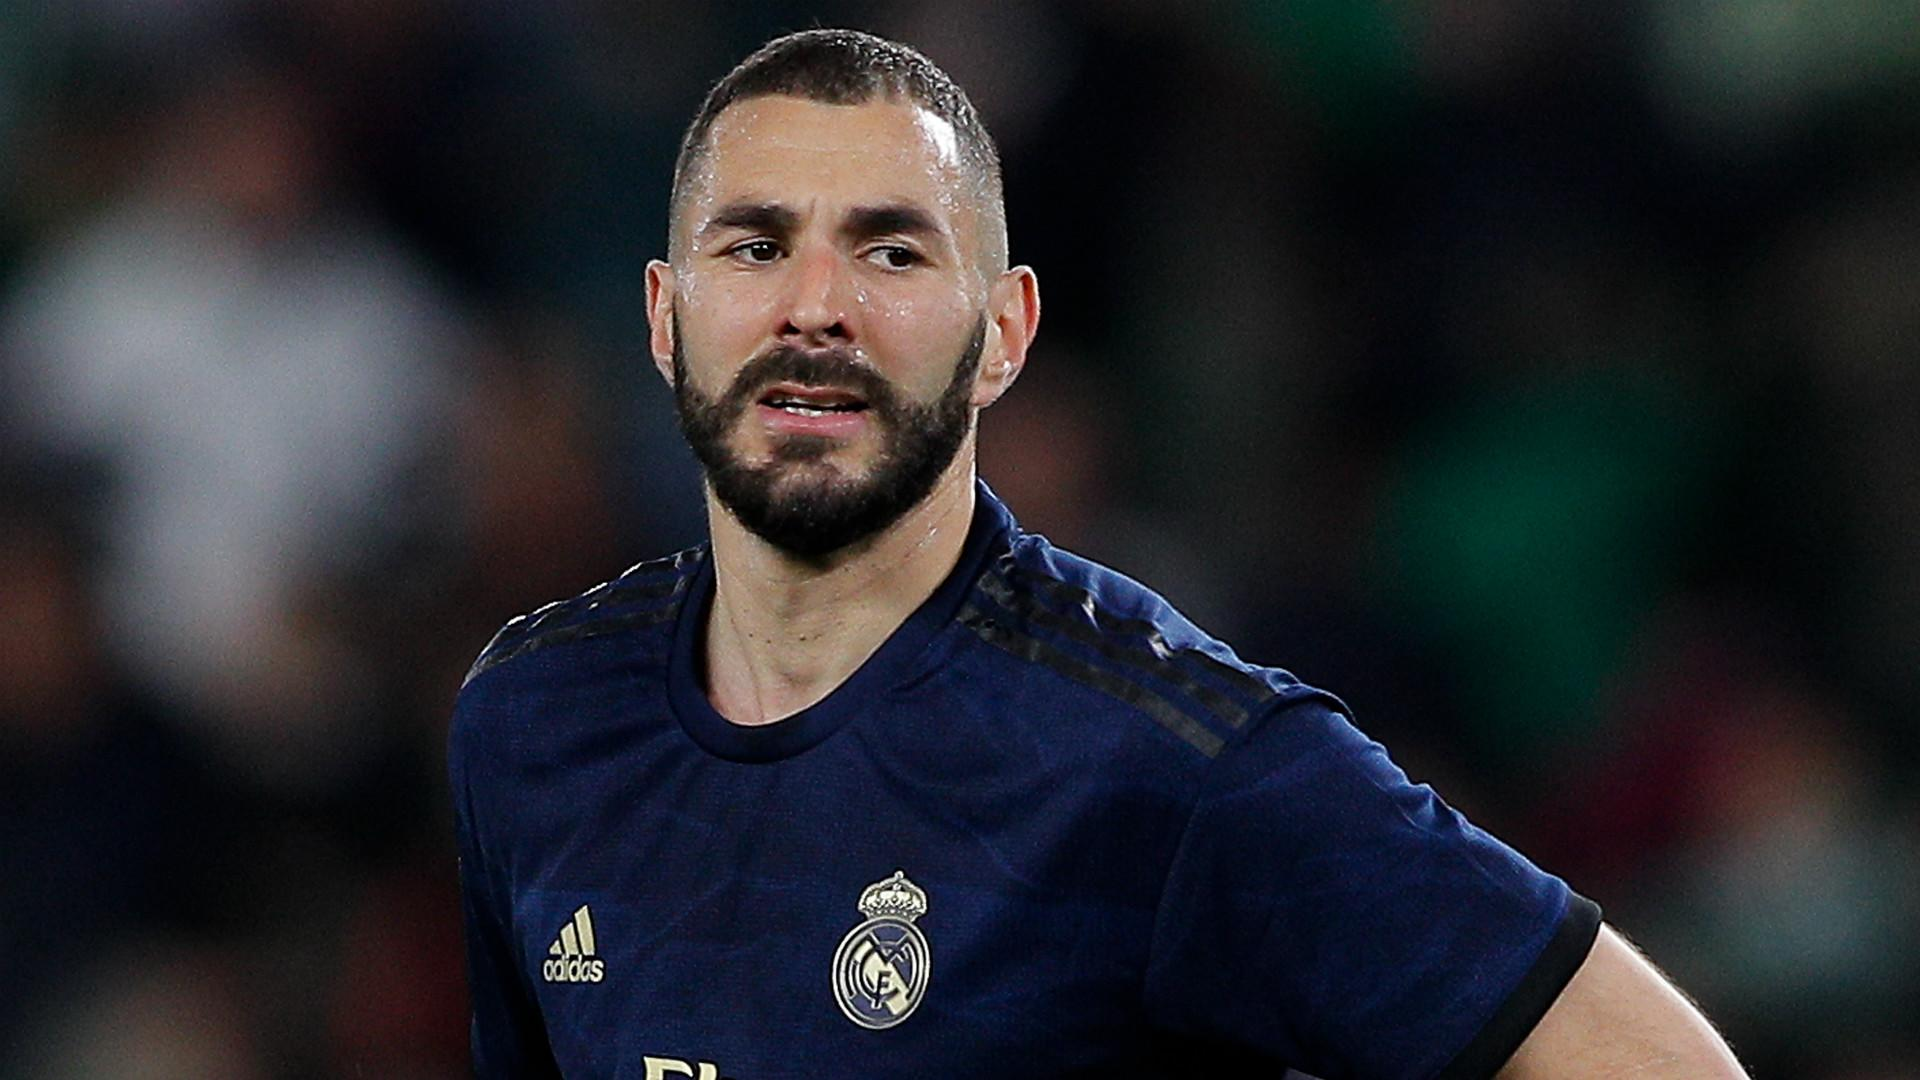 'Benzema's only desire is to return to Lyon' – former agent tips Real Madrid star for Ligue 1 return